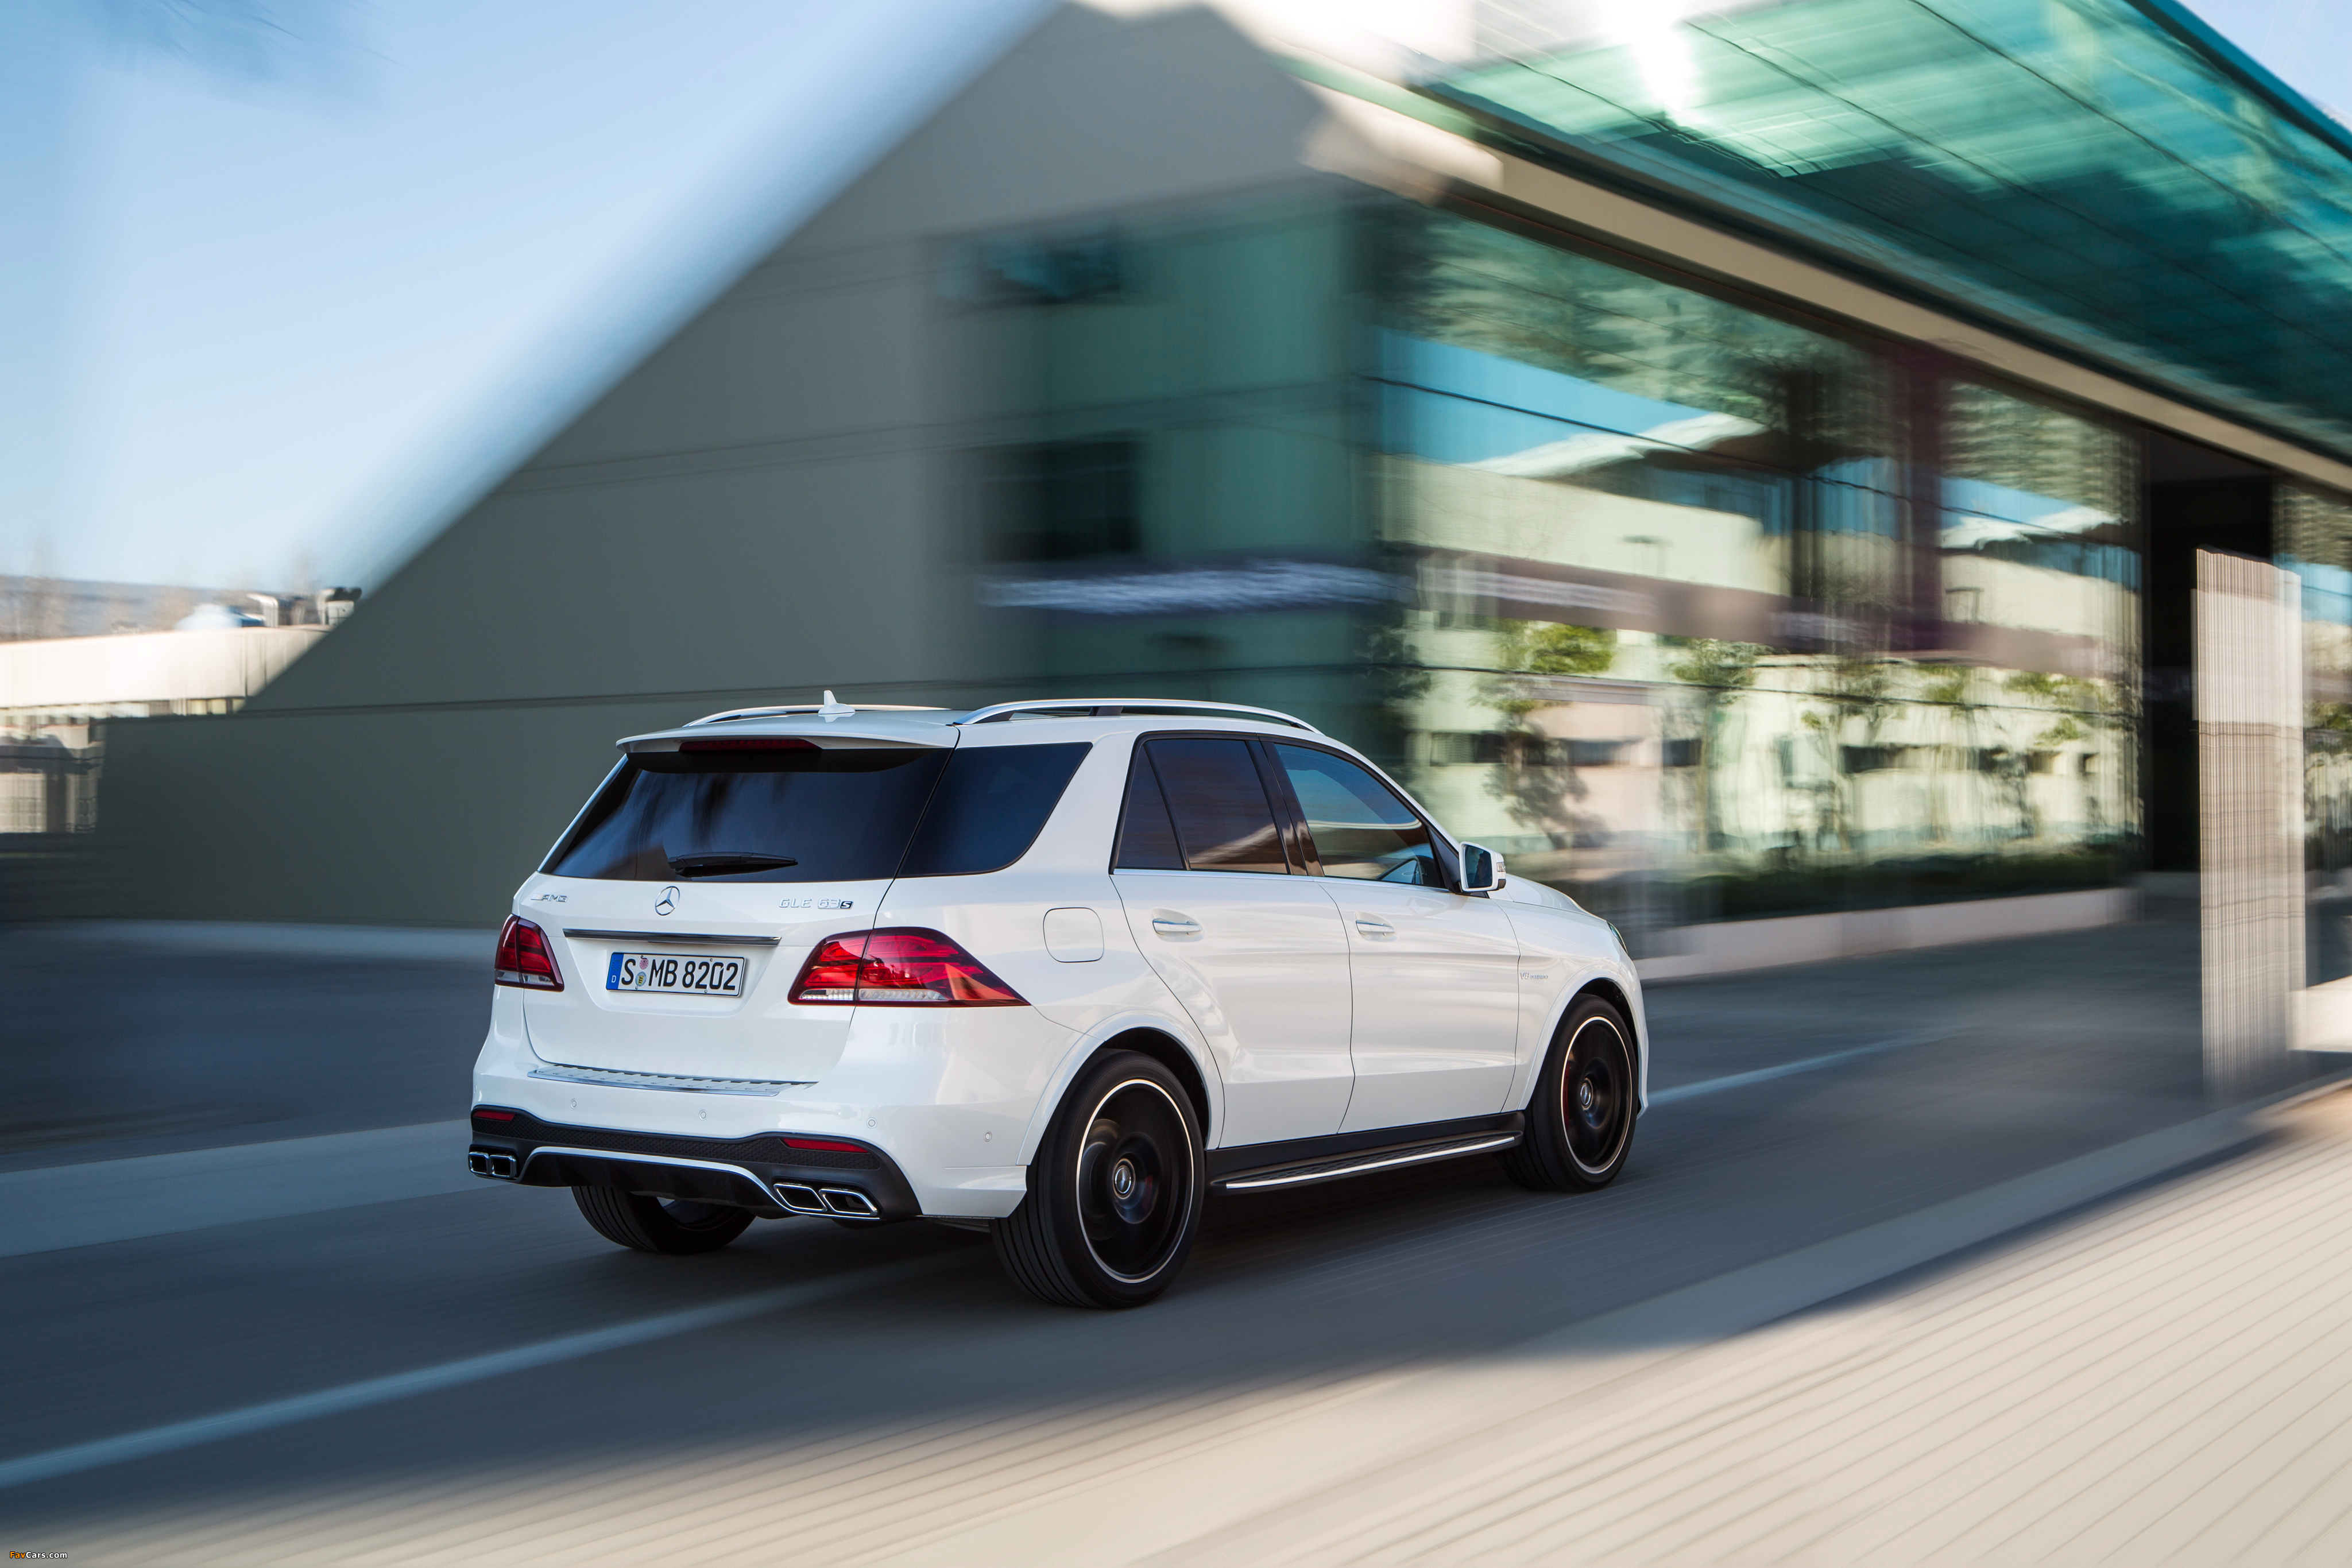 Mercedes-AMG GLE 63 S 4MATIC (W166) 2015 wallpapers (4096 x 2731)